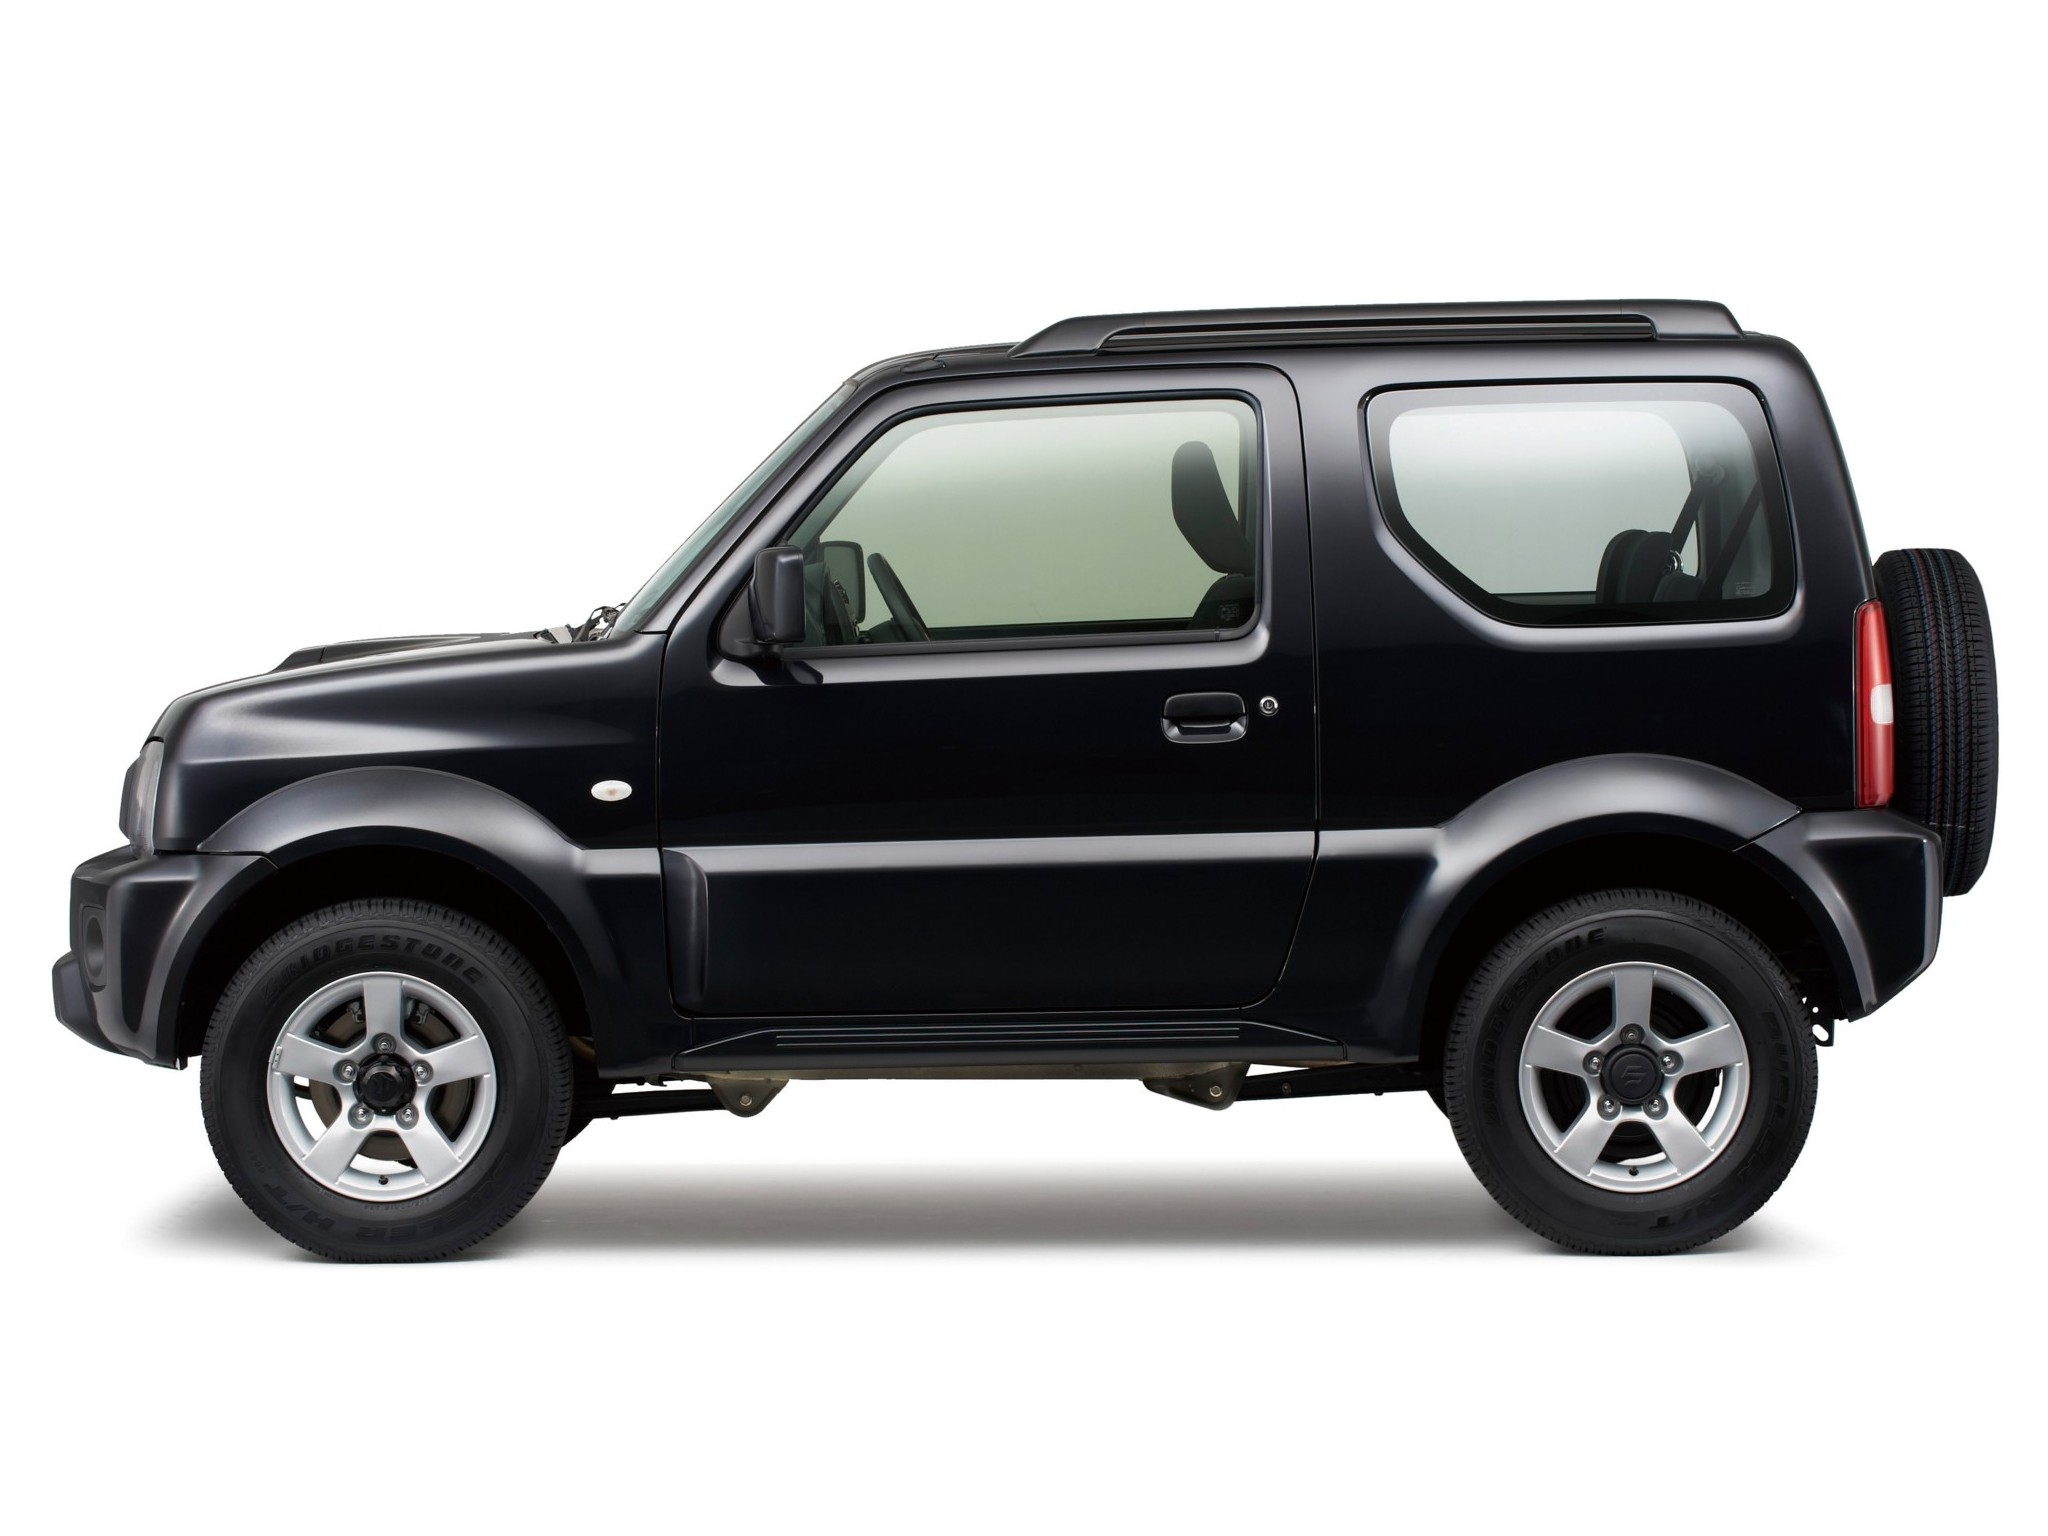 Suzuki Jimny 2012 on nissan oil filter